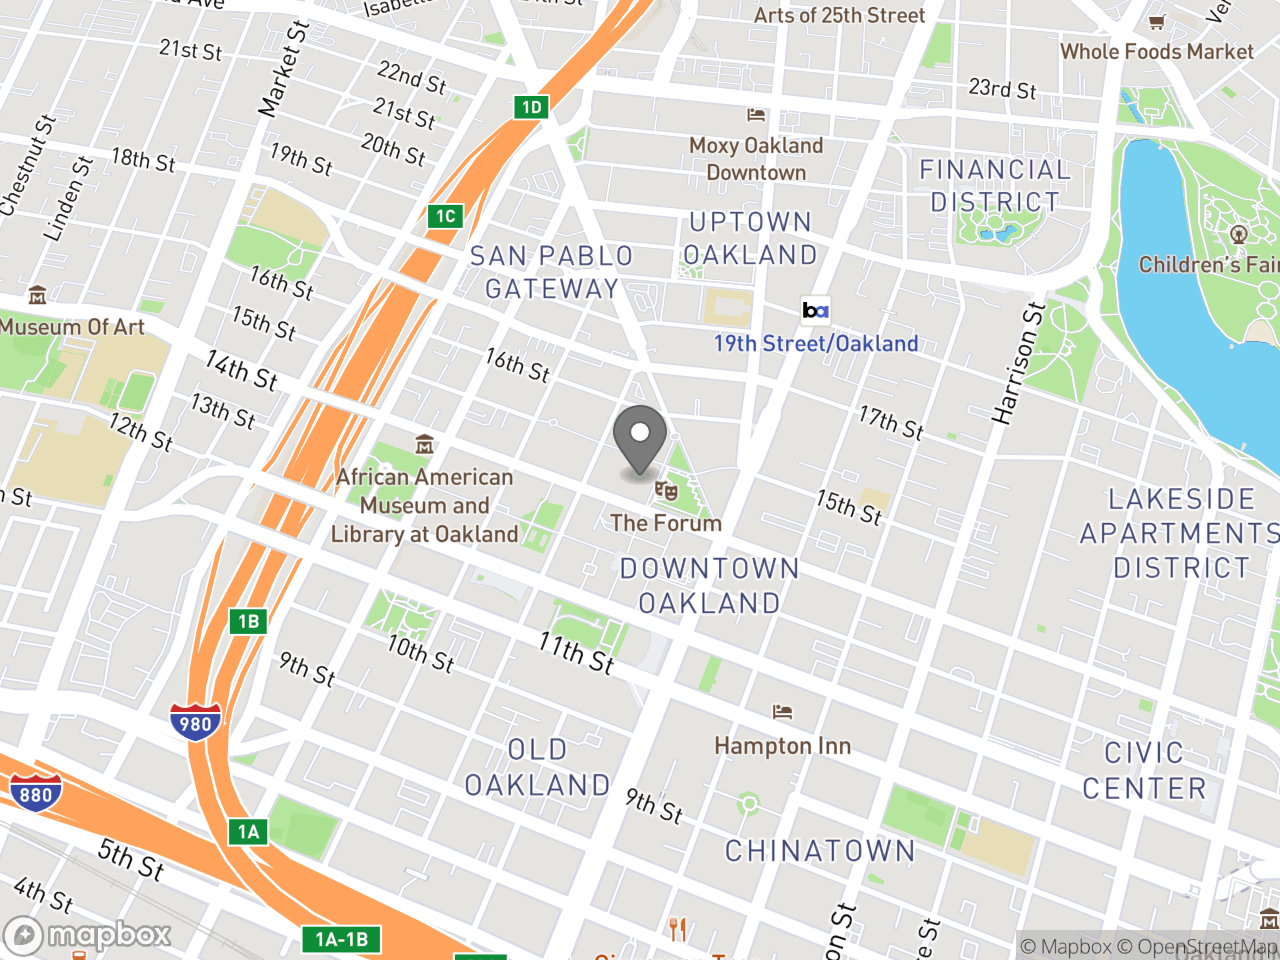 Map image for Cannabis Regulatory Commission - 12/5/19, located at 1 Frank H Ogawa Plaza in Oakland, CA 94612